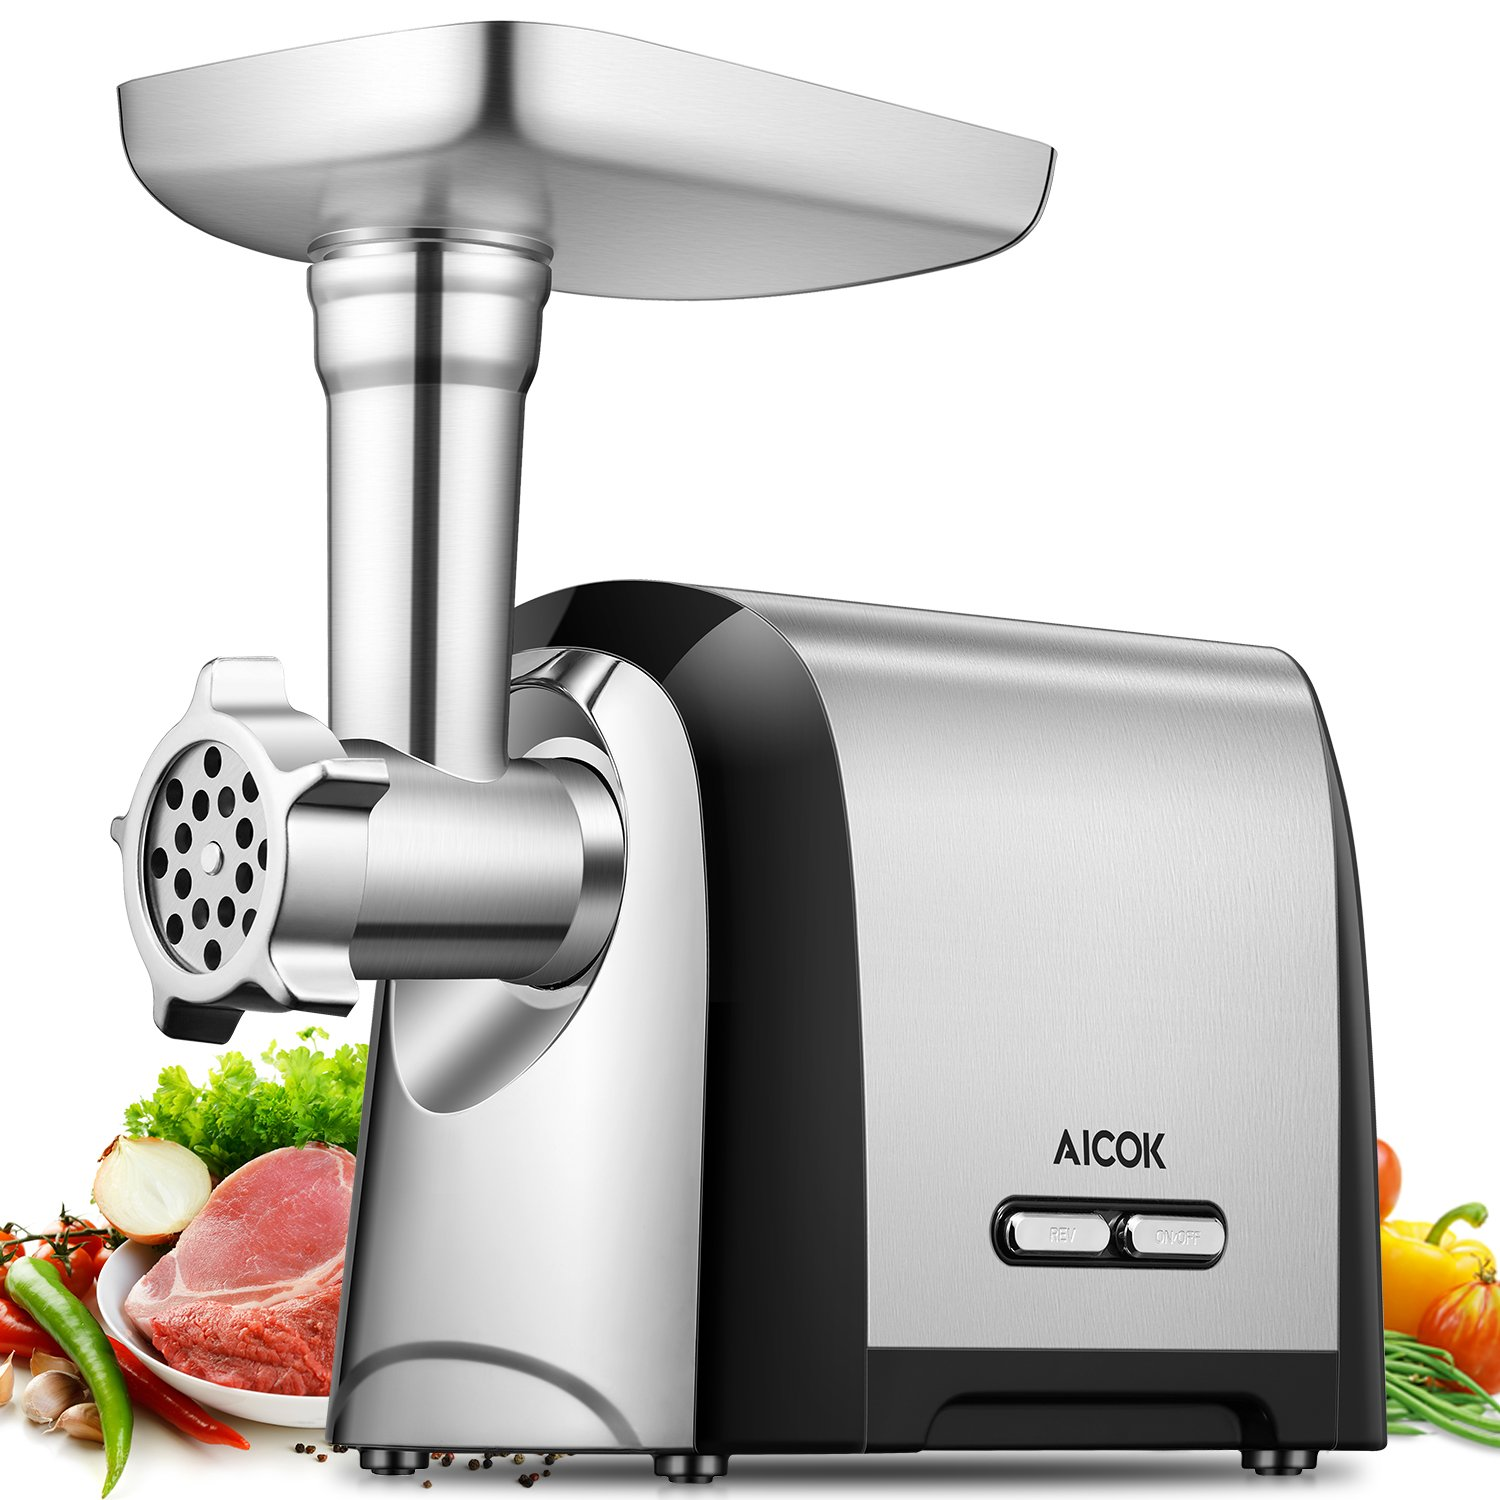 Aicok Electric Meat Grinder, 4-IN-1 Meat Mincer&Sausage Stuffer, 1200W Max Sausage&Kubbe Kits Included, 3 Grinding Plates, Concealed Accessory Box, Stainless Steel, Home&Commercial Use, FDA Certified by AICOK